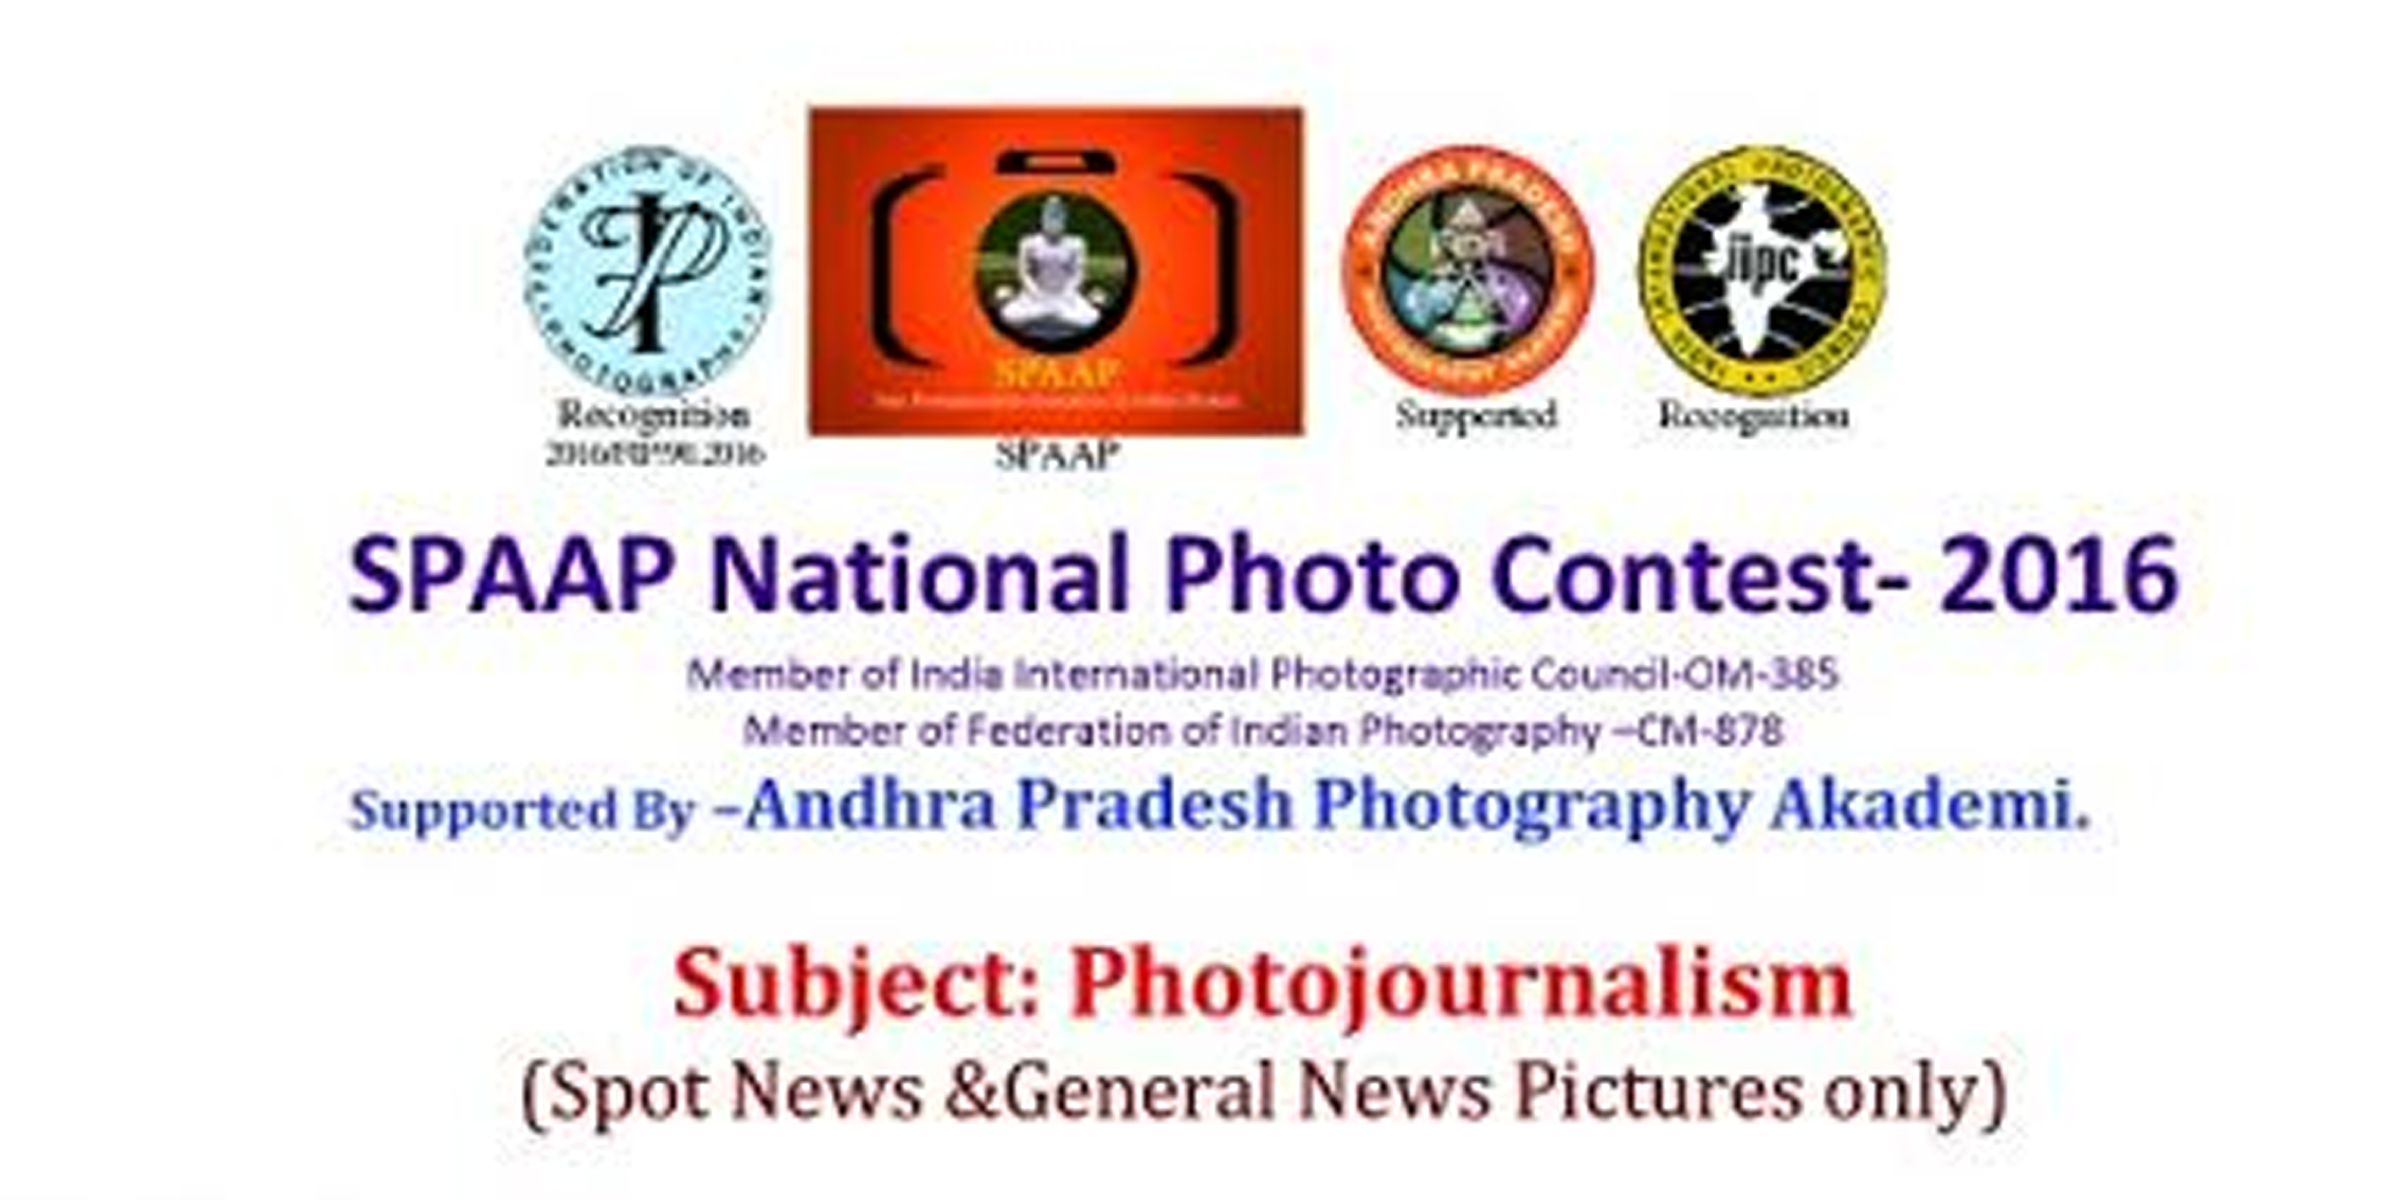 SAAP National Photo contest 2016 : Last date to send entries : 20th of October 2016.